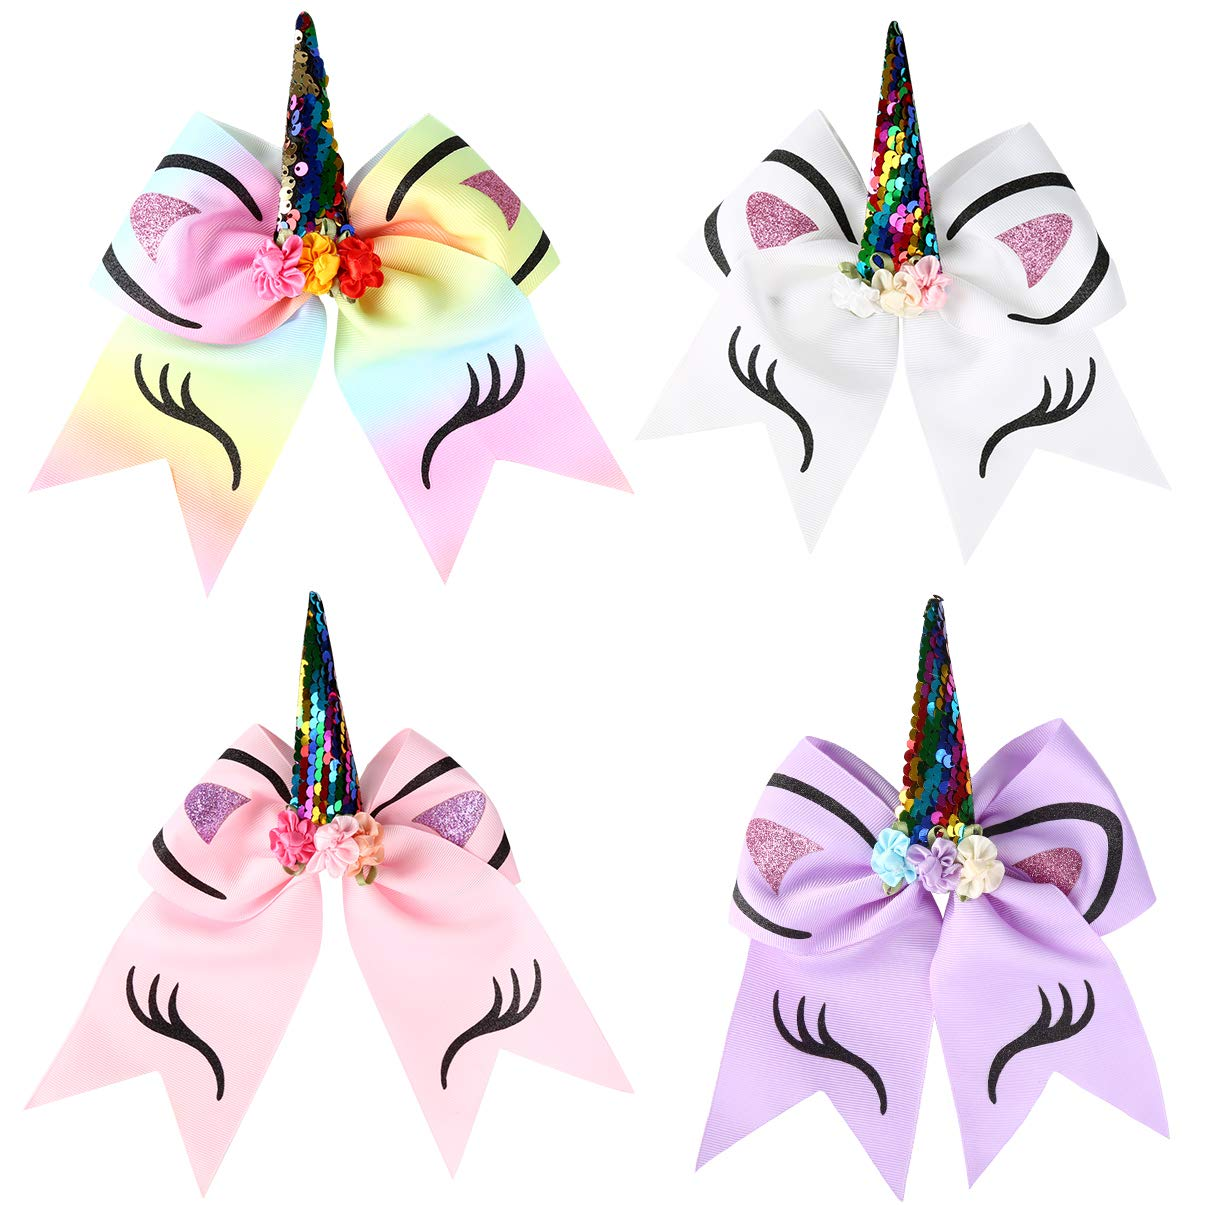 Vbiger Girl's Hair Bow Unicorn Cheer Bows Elastic Headband For Baby Teens Toddlers 4 Pack by VBIGER (Image #2)